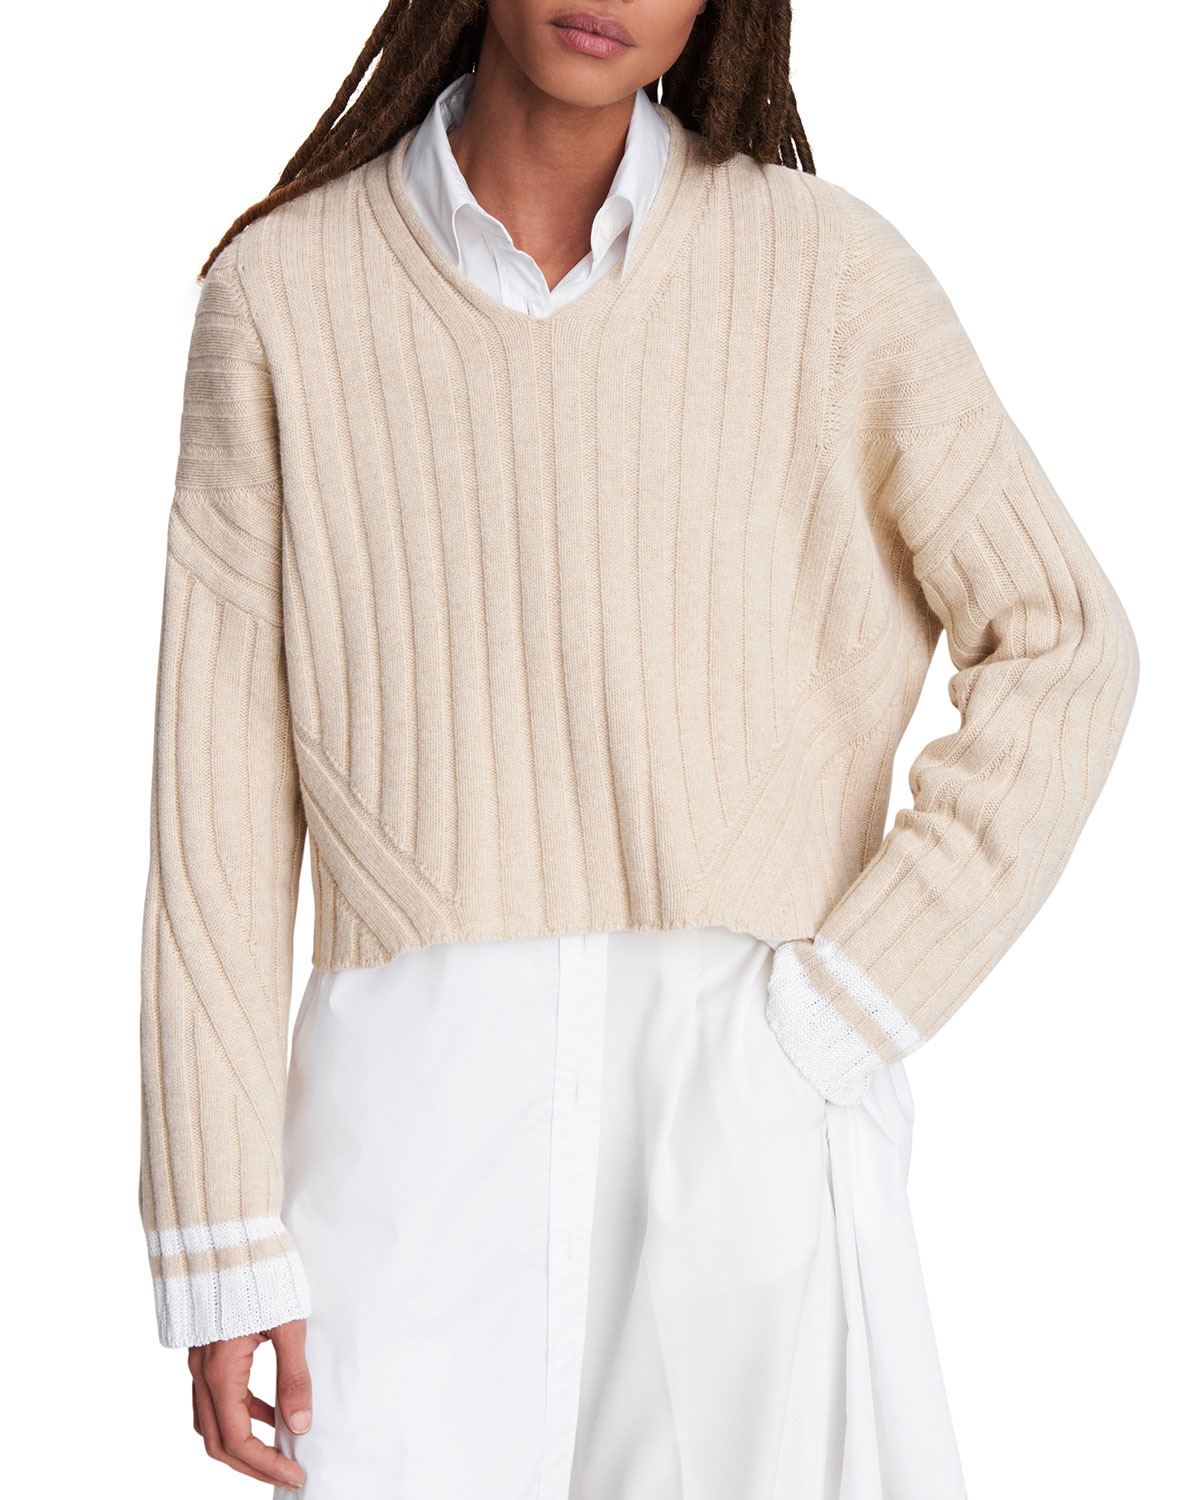 Rag & Bone SERENA CROPPED V-NECK SWEATER